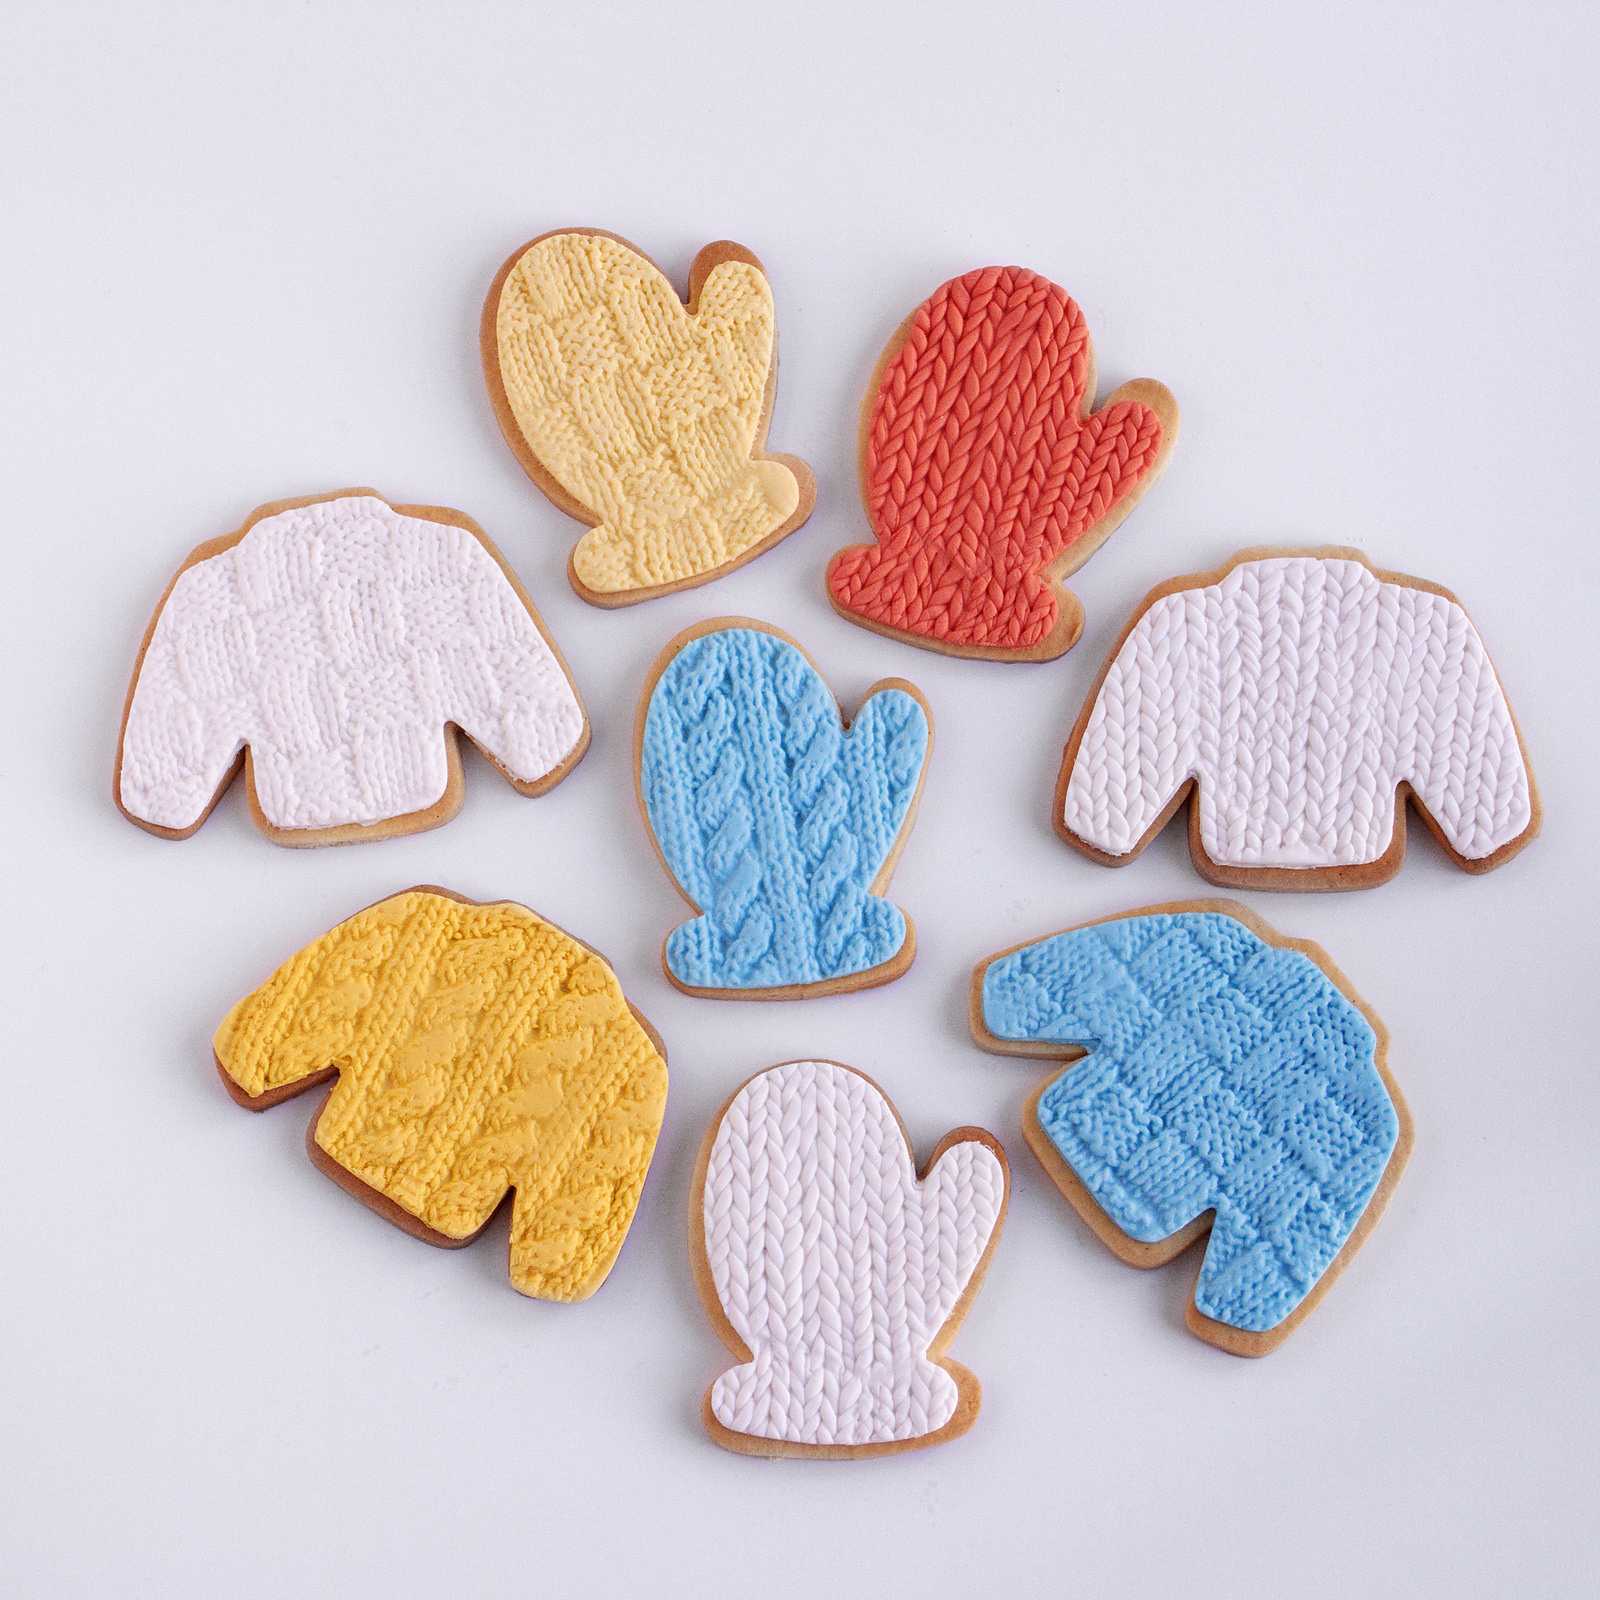 These Knit Cookies Are The Most Adorable Thing You'll See Today